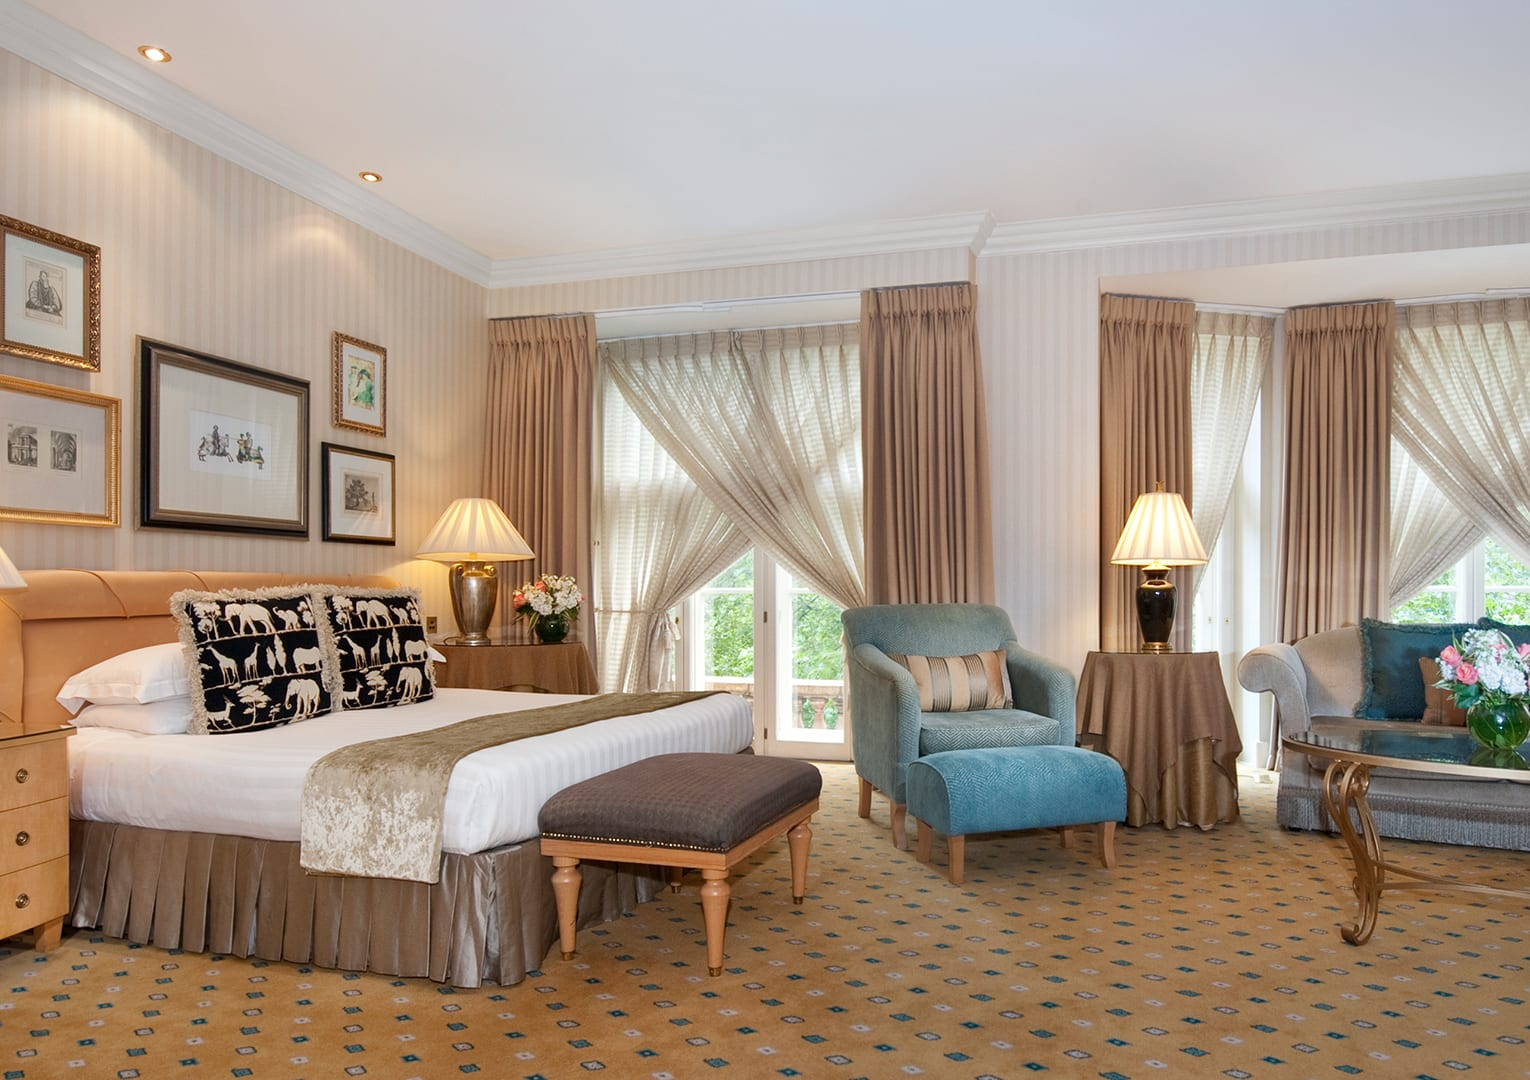 Hotel Bedroom Sizes Uk Luxury Hotel Rooms And Suites The Landmark London